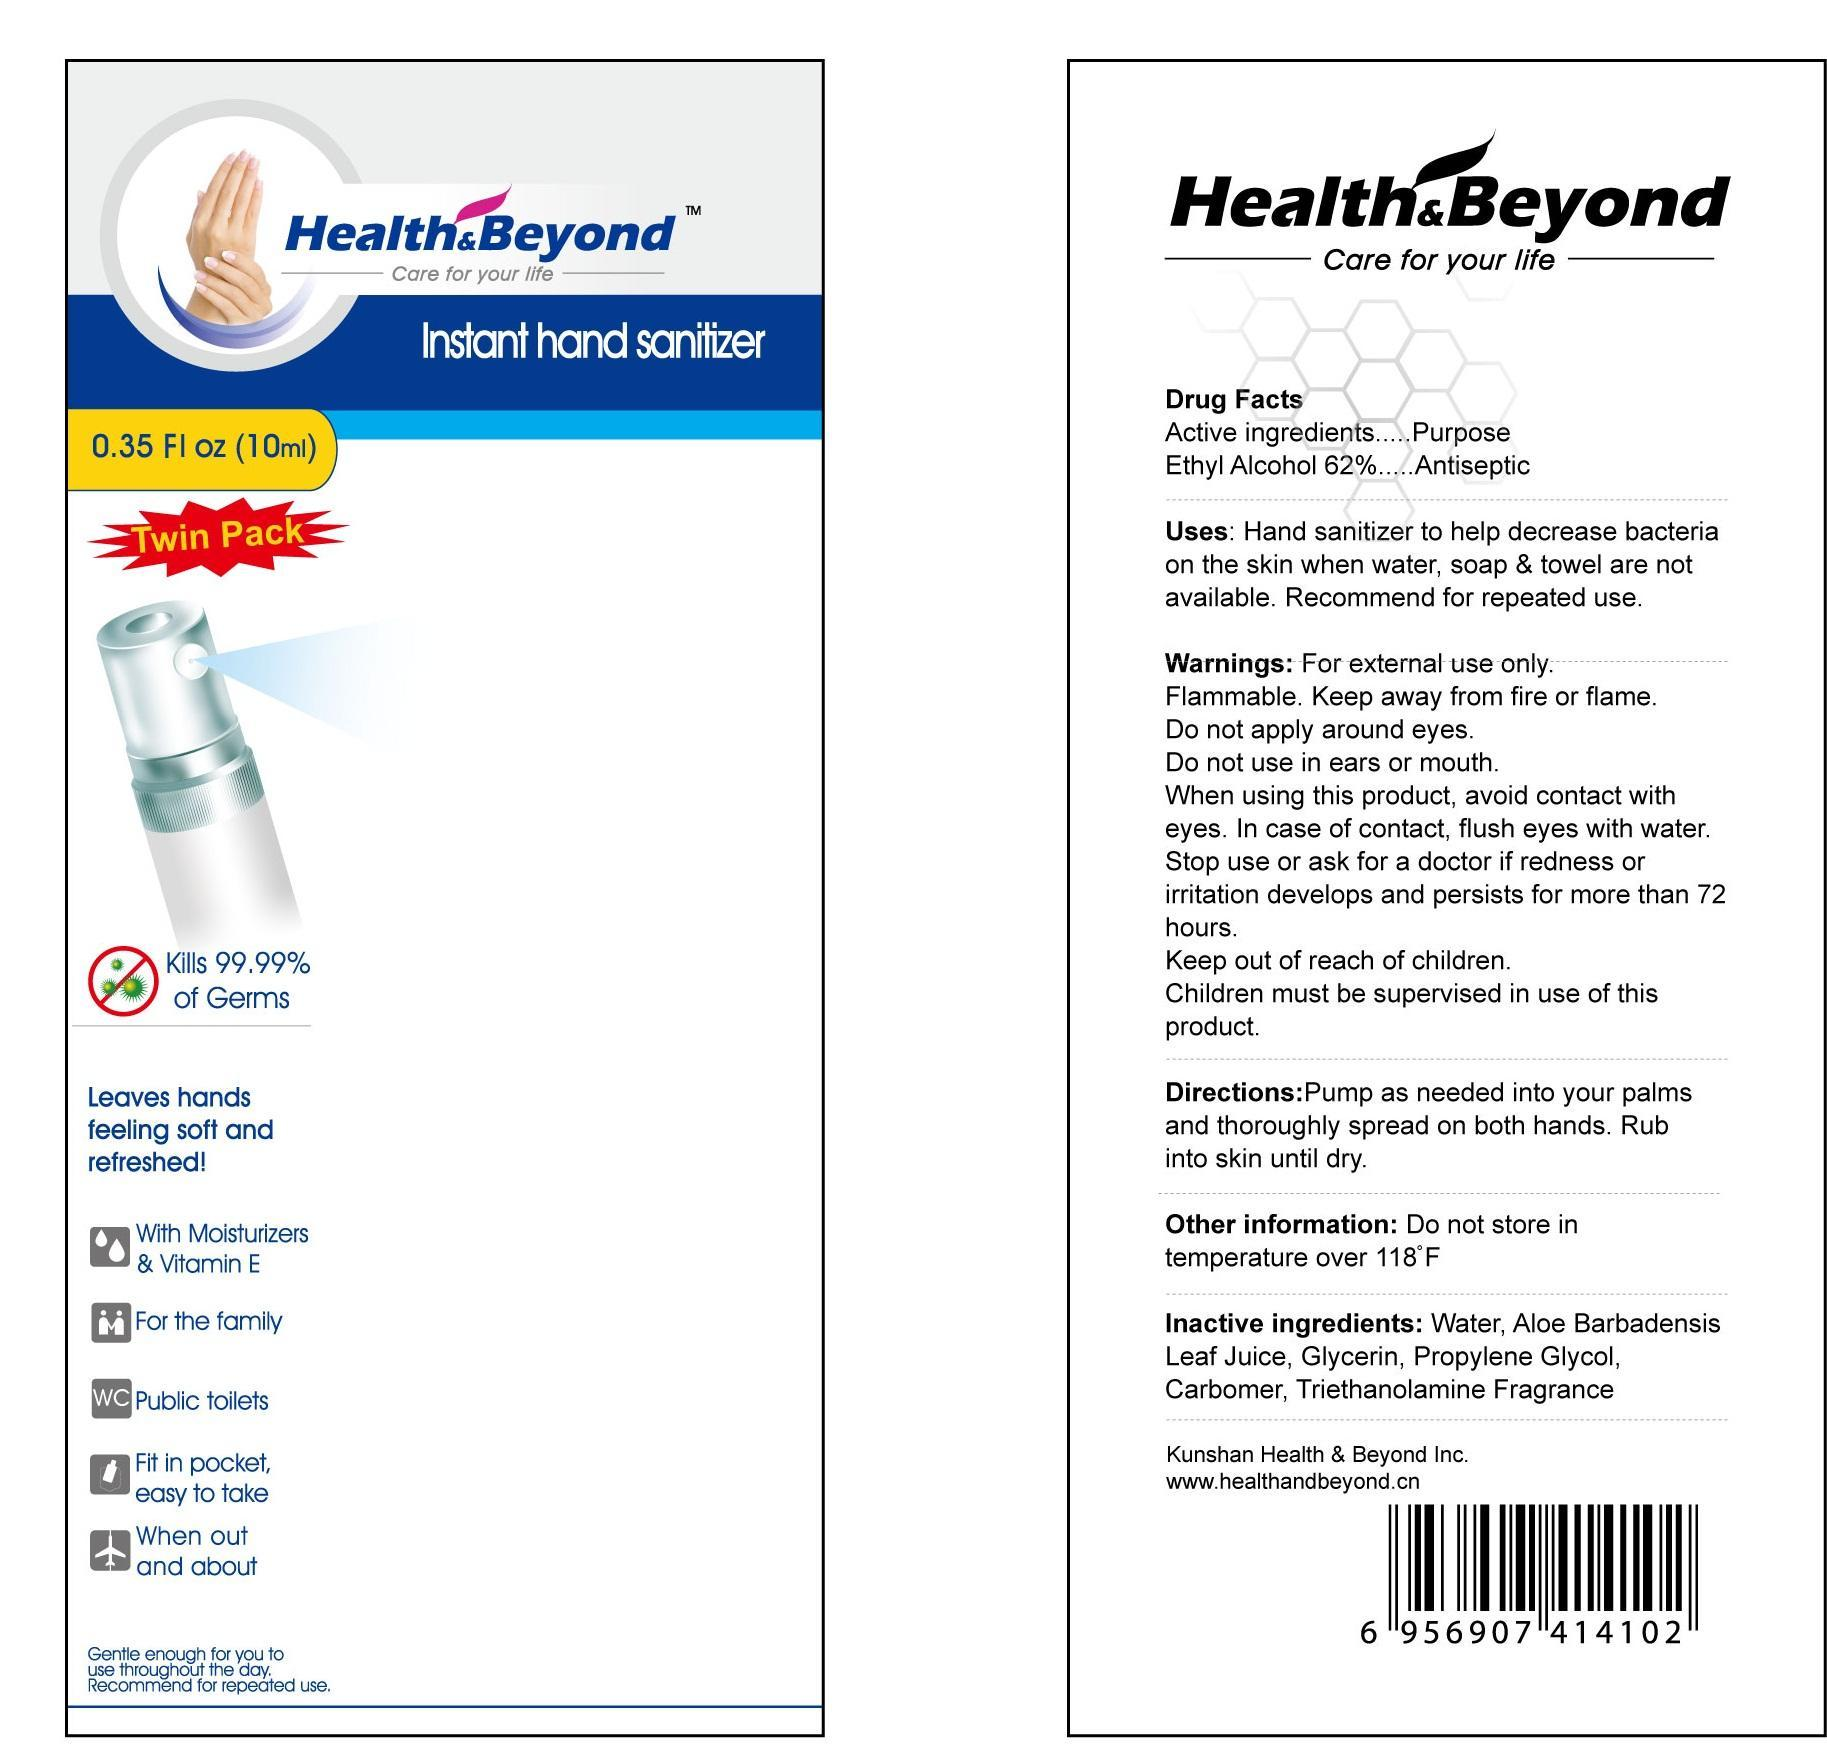 Health And Beyond Instant Hand Sanitizer Twin Pack Twin Pack (Ethyl Alcohol) Kit [Nantong Health & Beyond Hygienic Products Inc.]